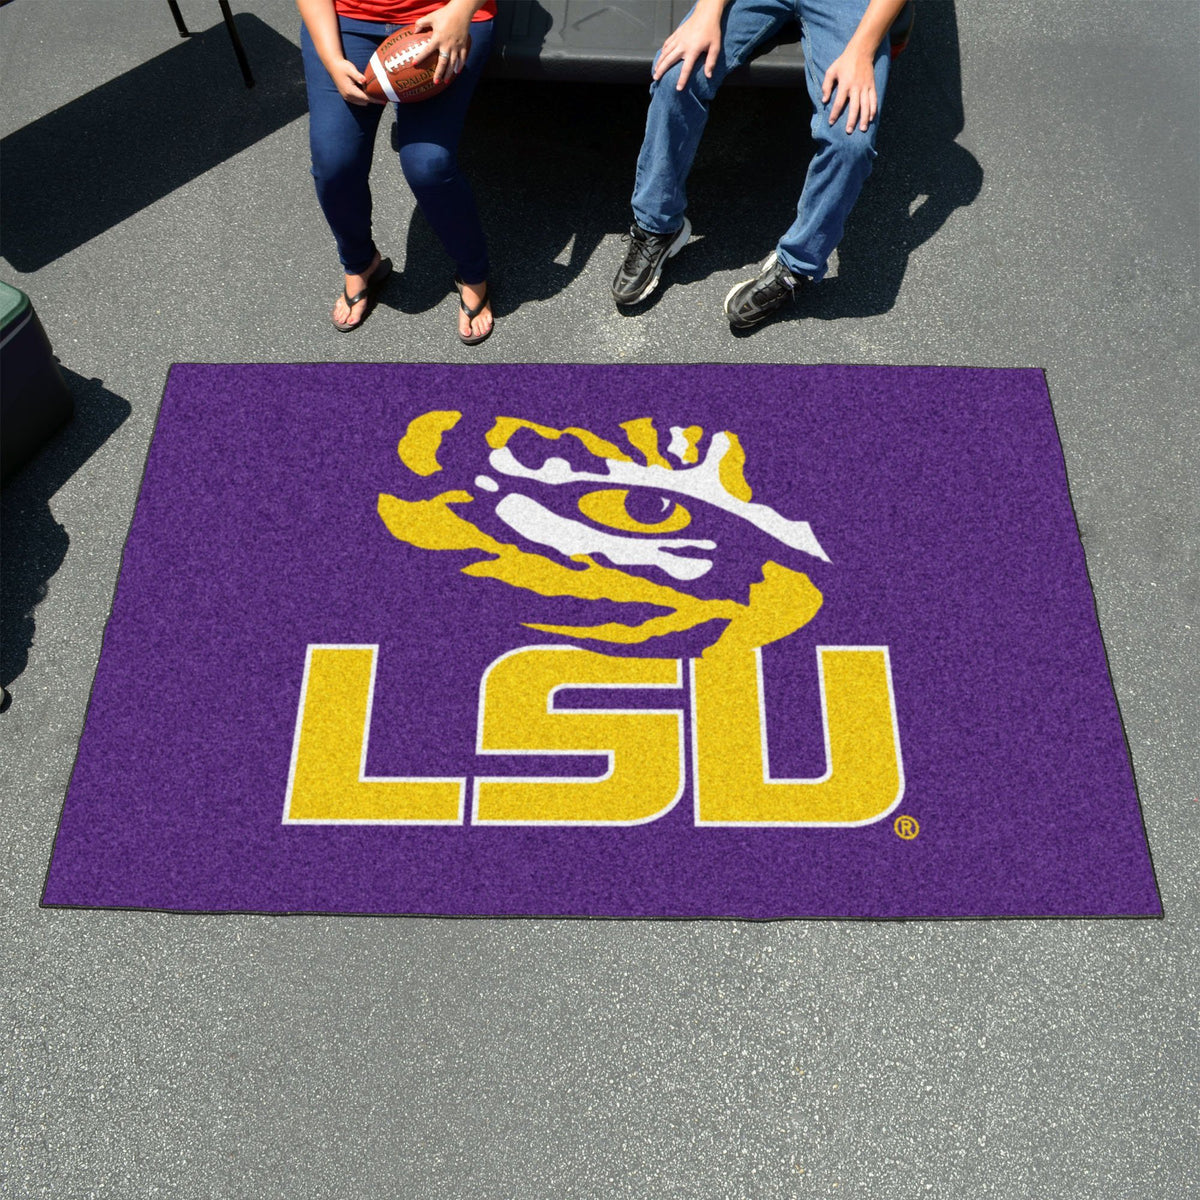 Collegiate - Ulti-Mat: A - L Collegiate Mats, Rectangular Mats, Ulti-Mat, Collegiate, Home Fan Mats LSU